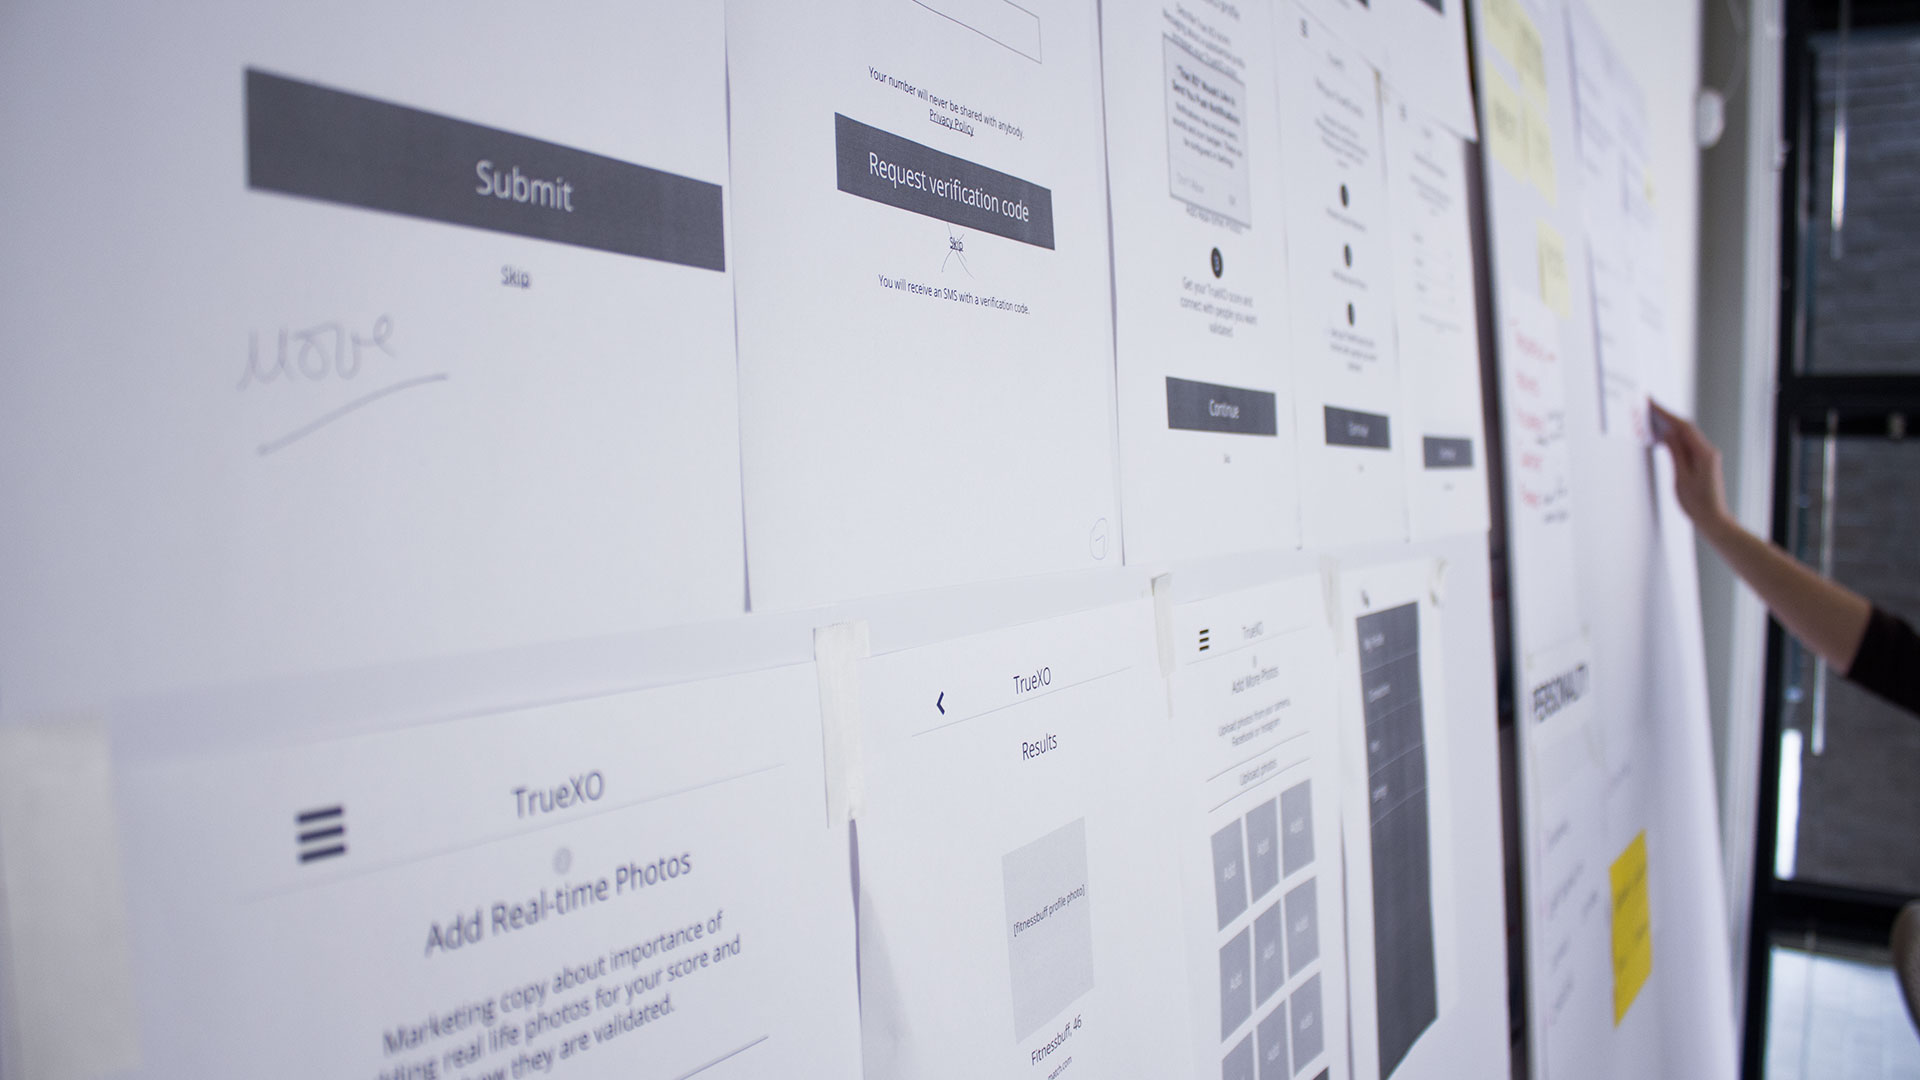 bTru UX development process